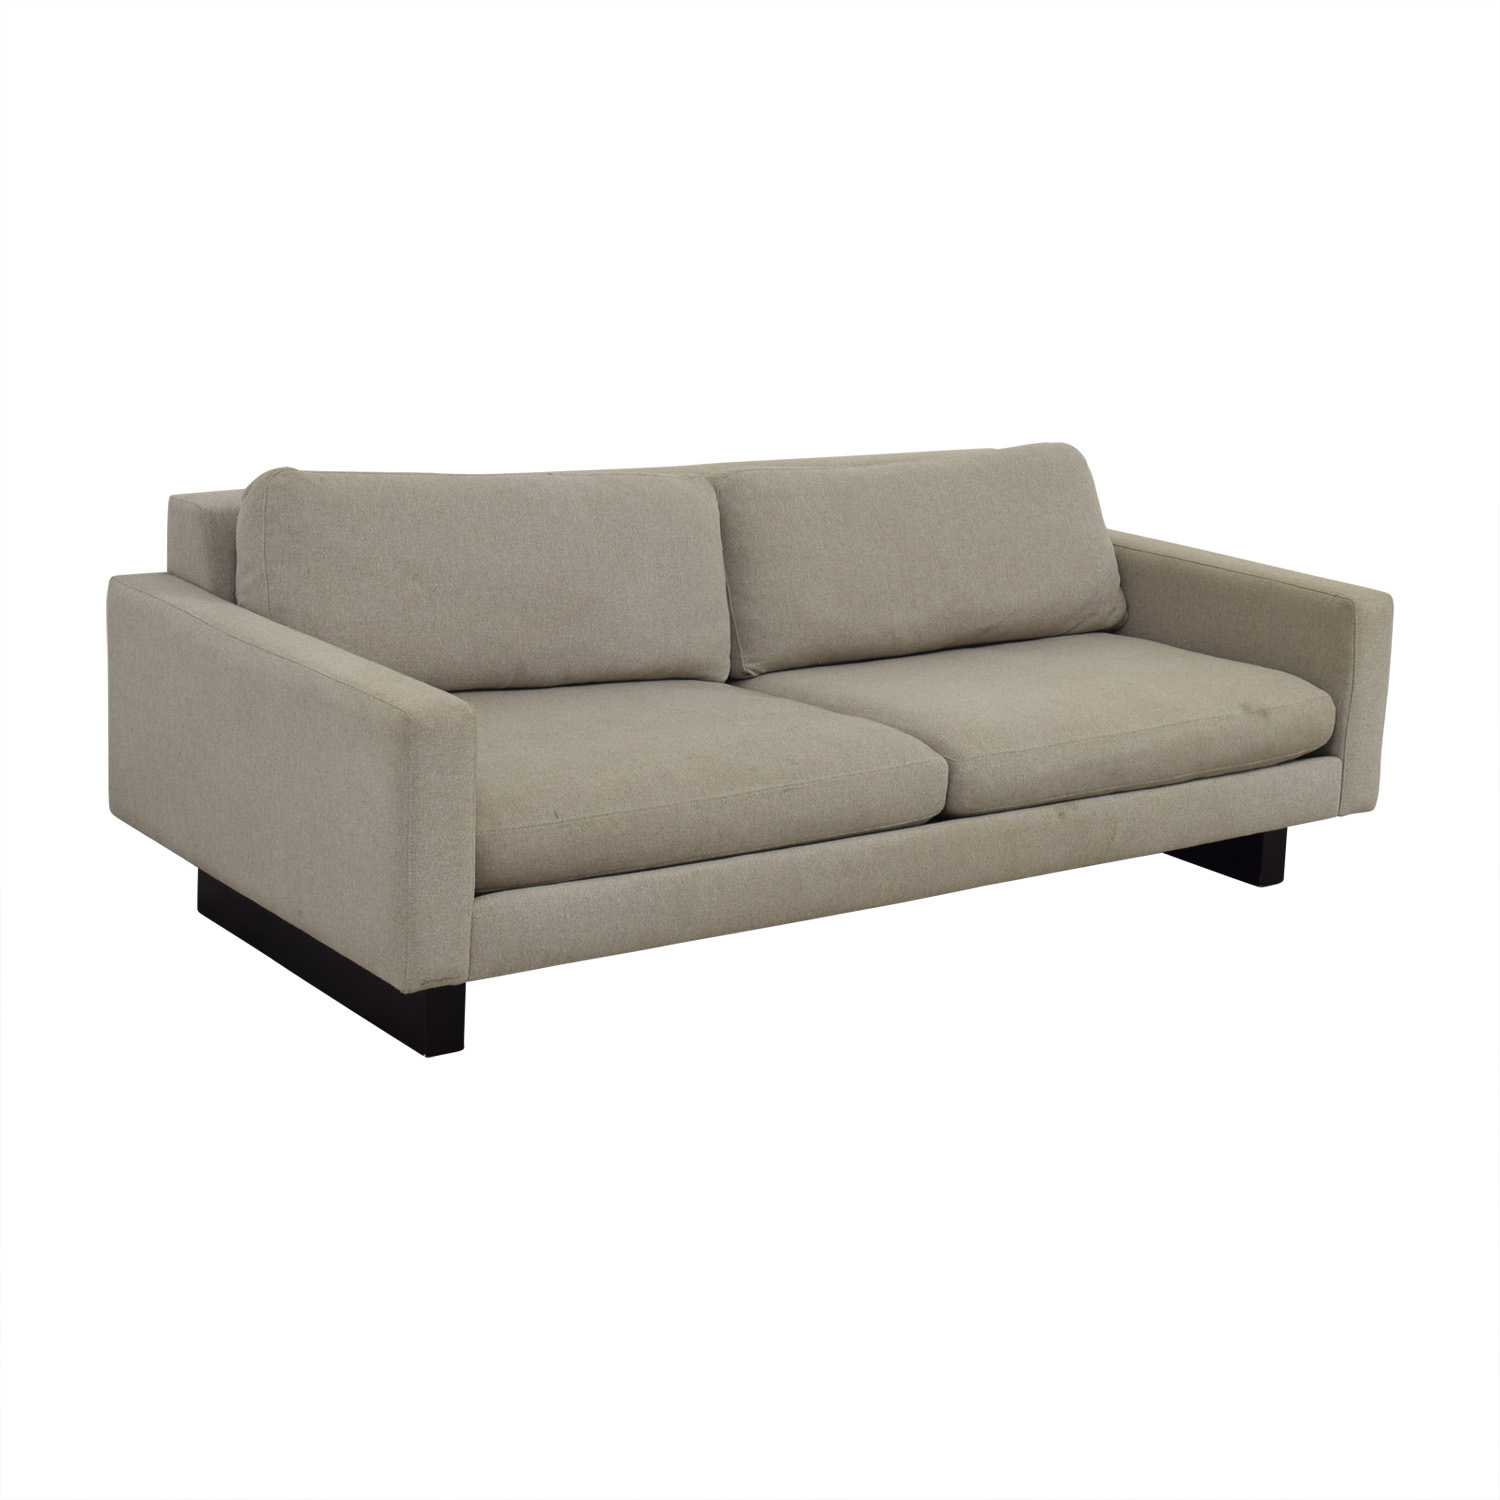 Room & Board Room & Board Beige Hess Two-Cushion Sofa OFF WHITE